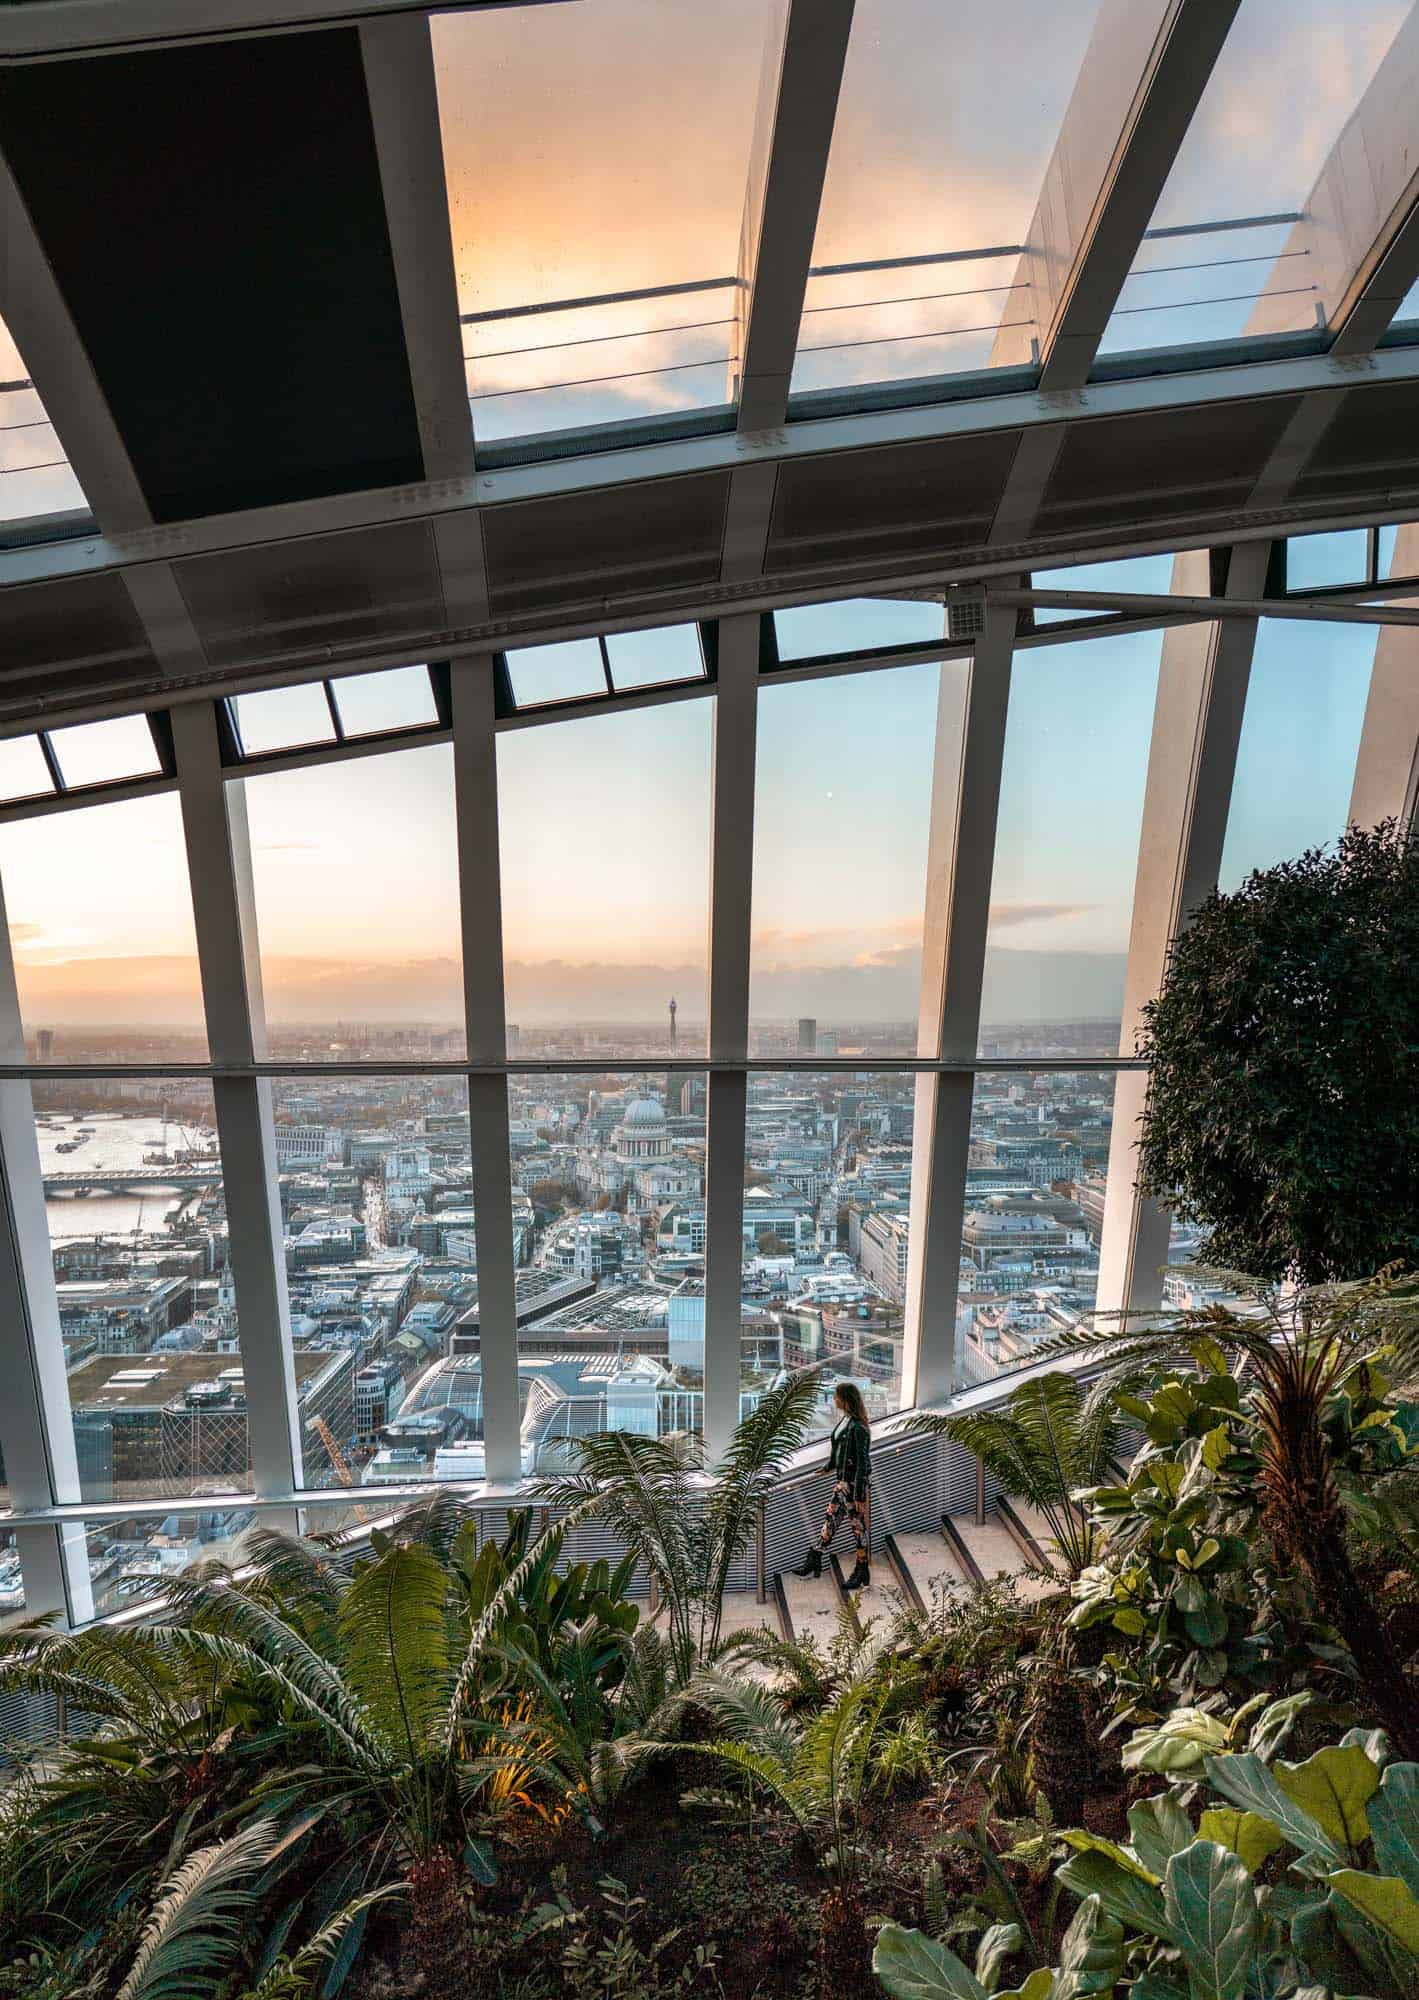 Incredible sunset views from Sky Garden make for an Instagrammable photo